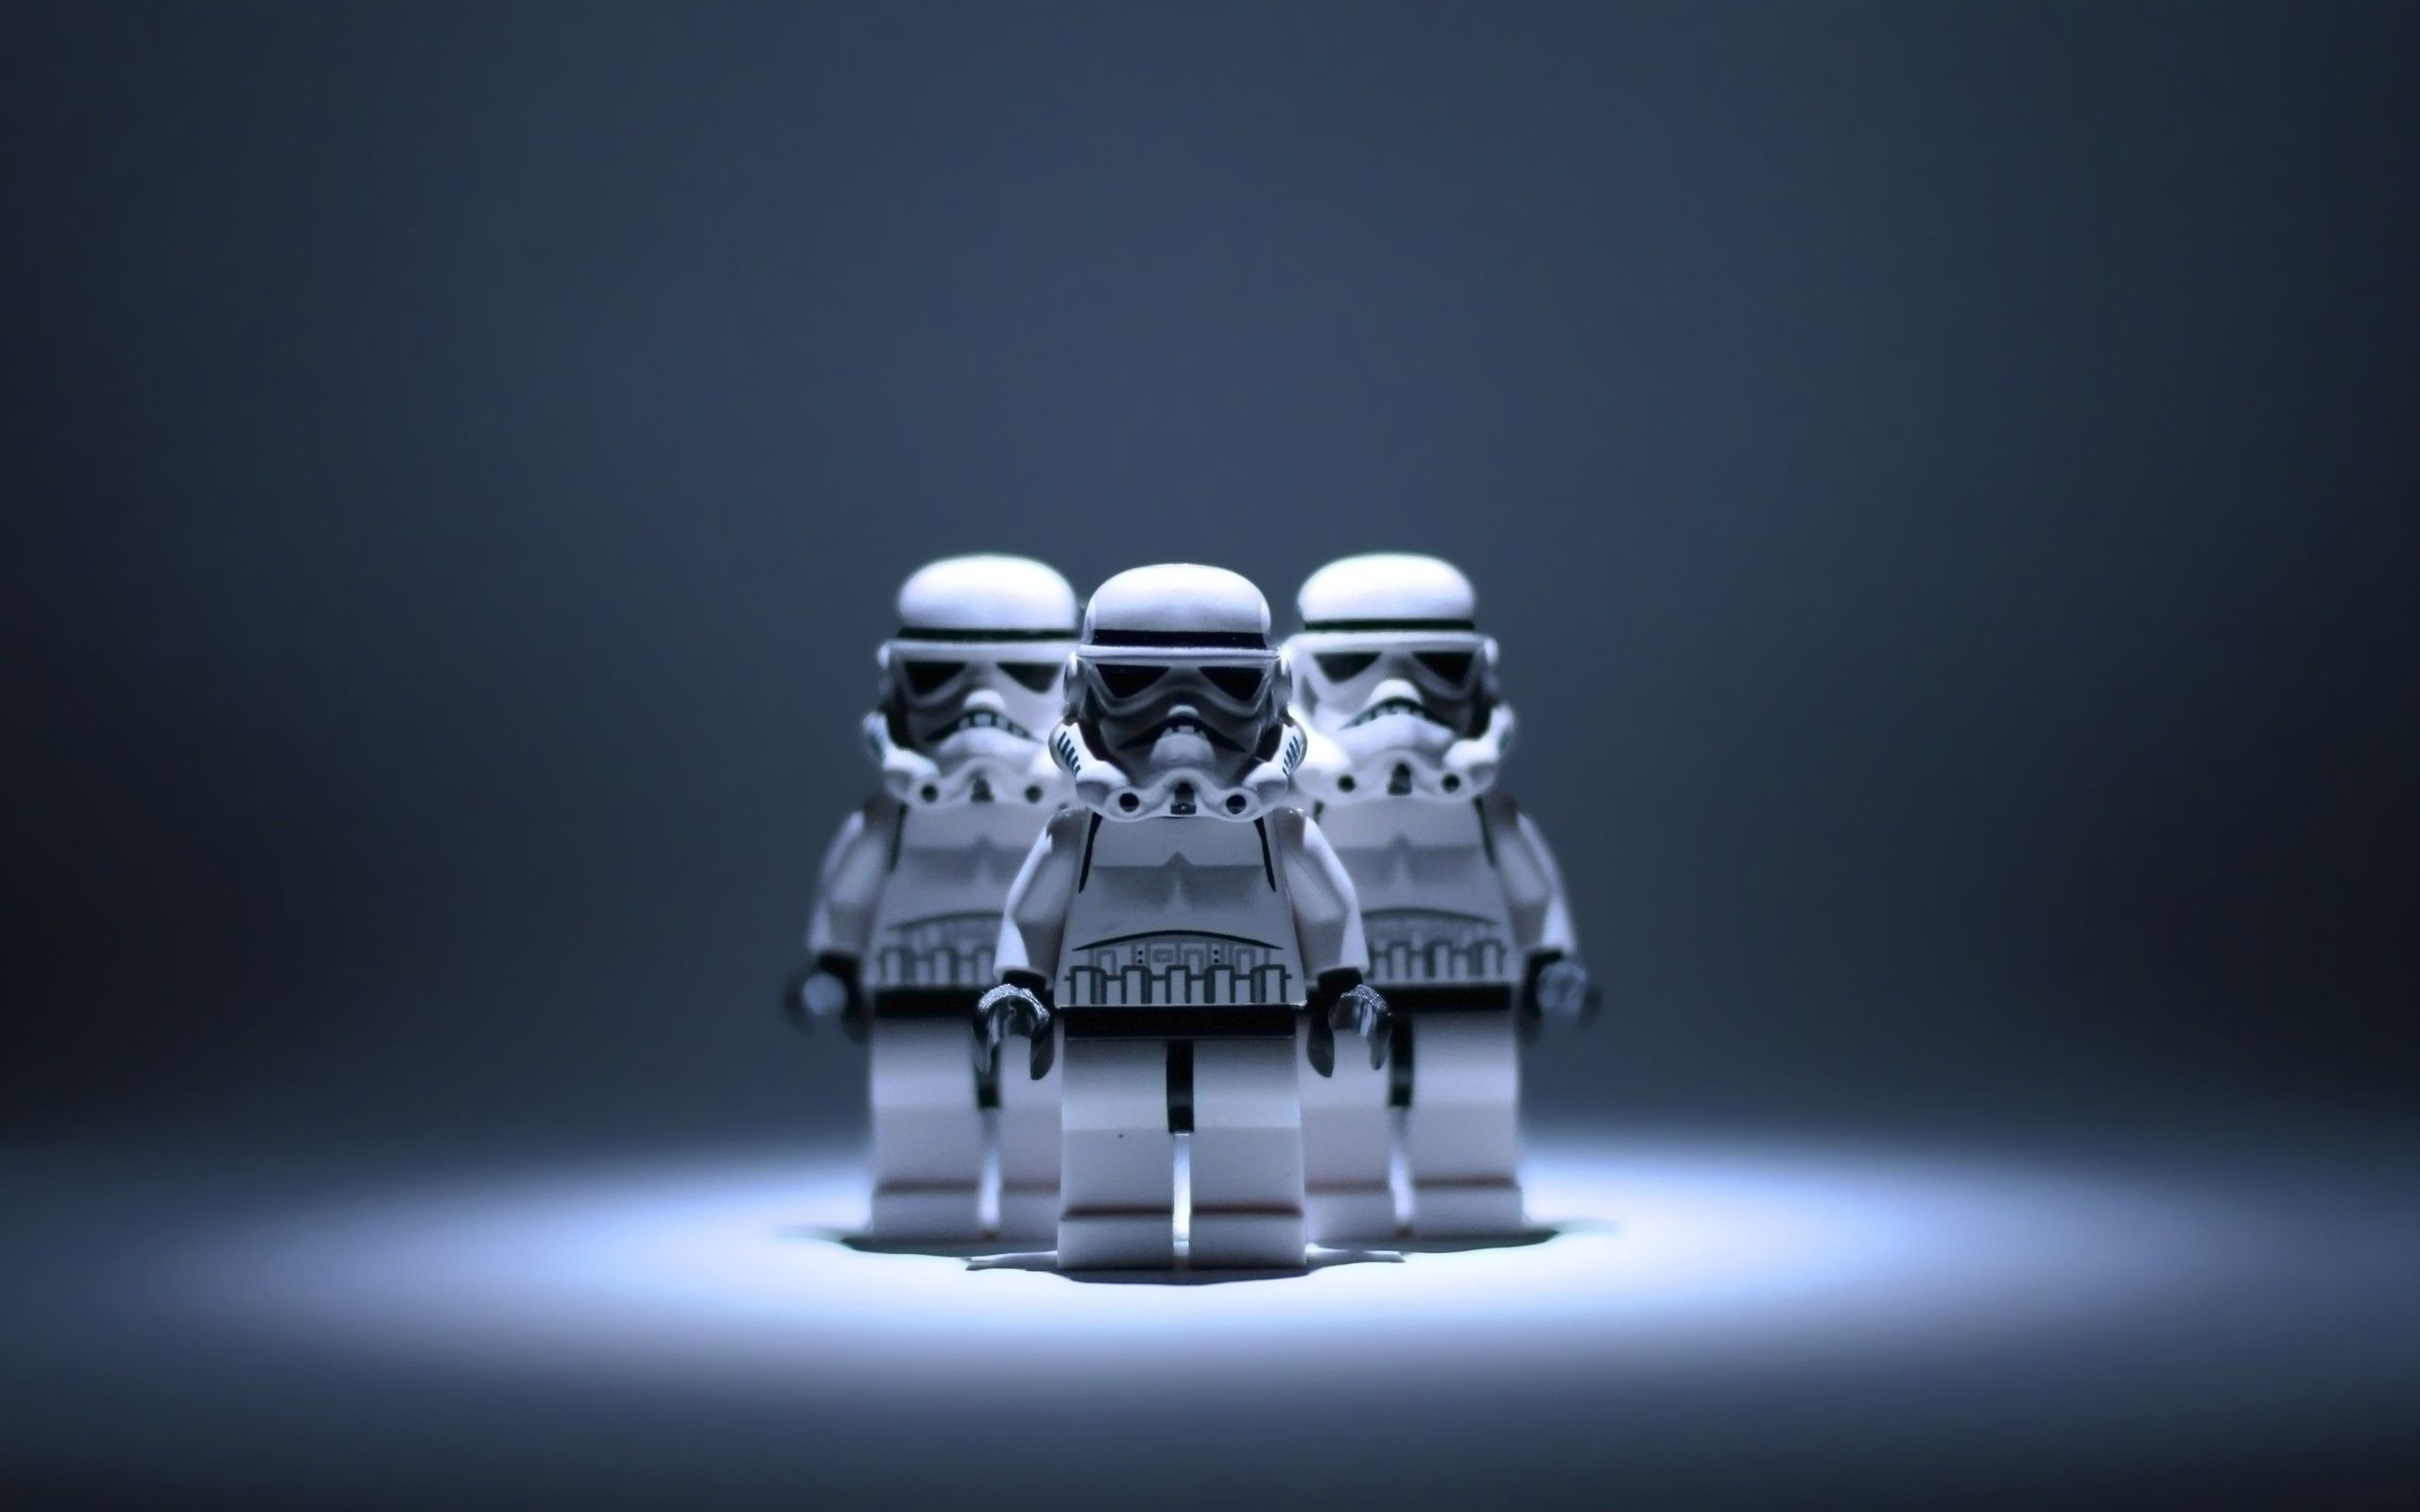 Star Wars Wallpaper Lego